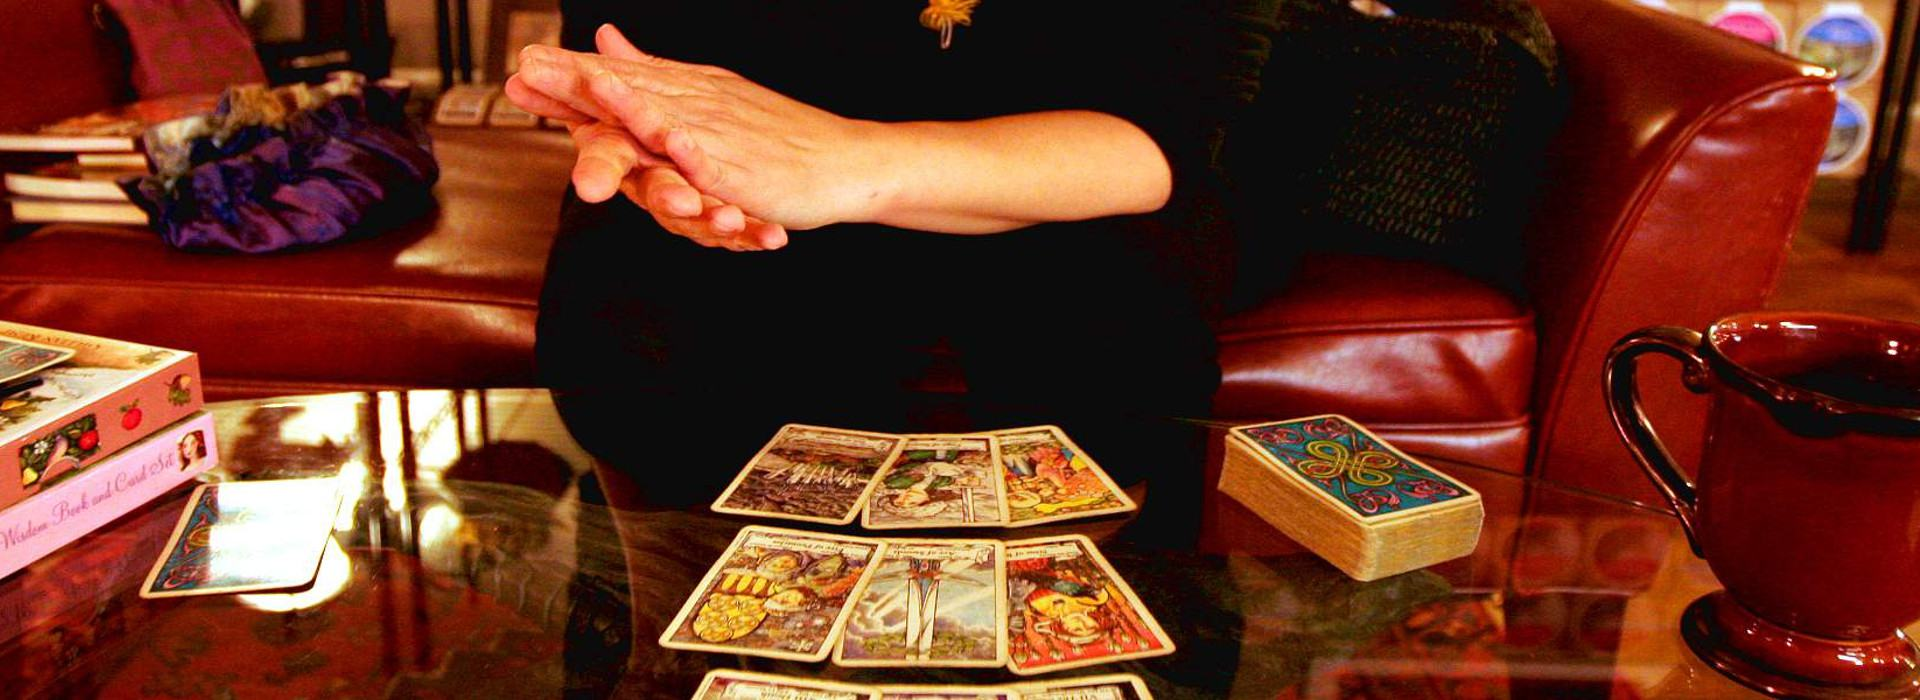 soft female hands pressed together over a tarot card reading layout